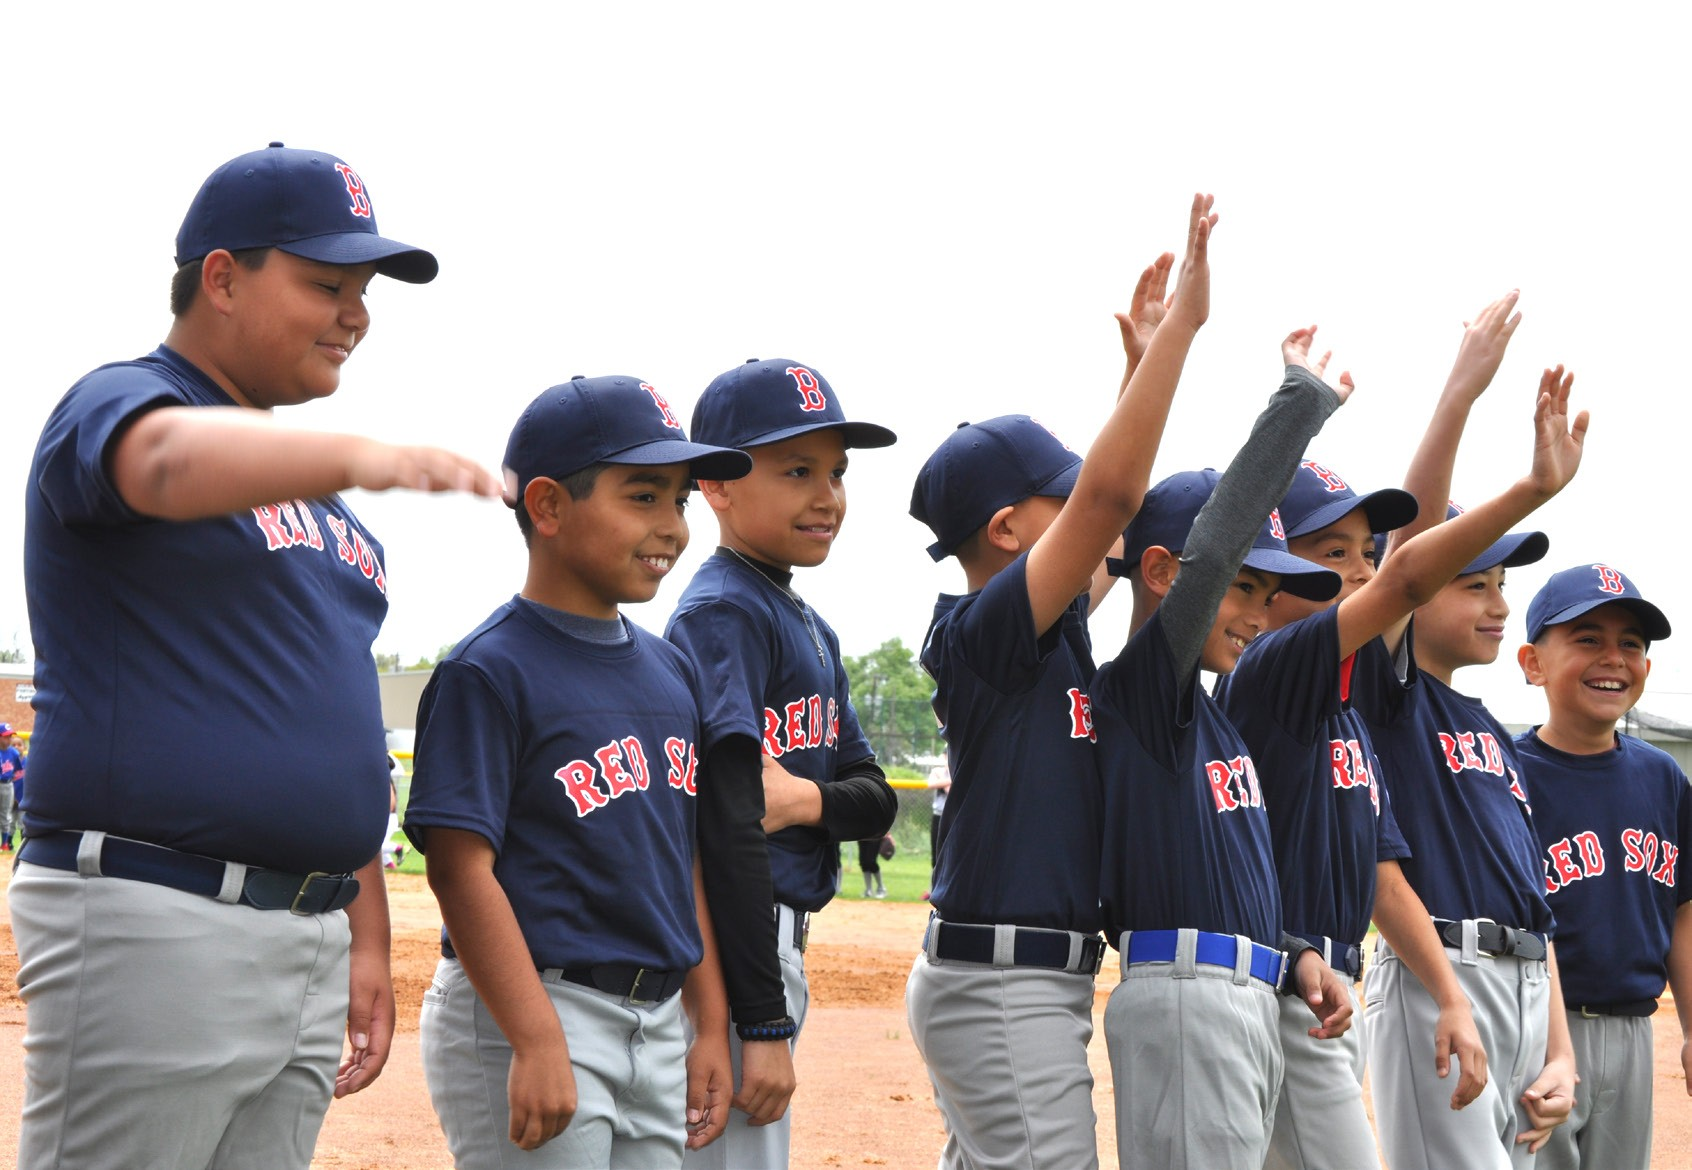 Jourdanton and Poteet Little Leagues held their opening day on Saturday, March 19. Check out page 8C for additional photos.